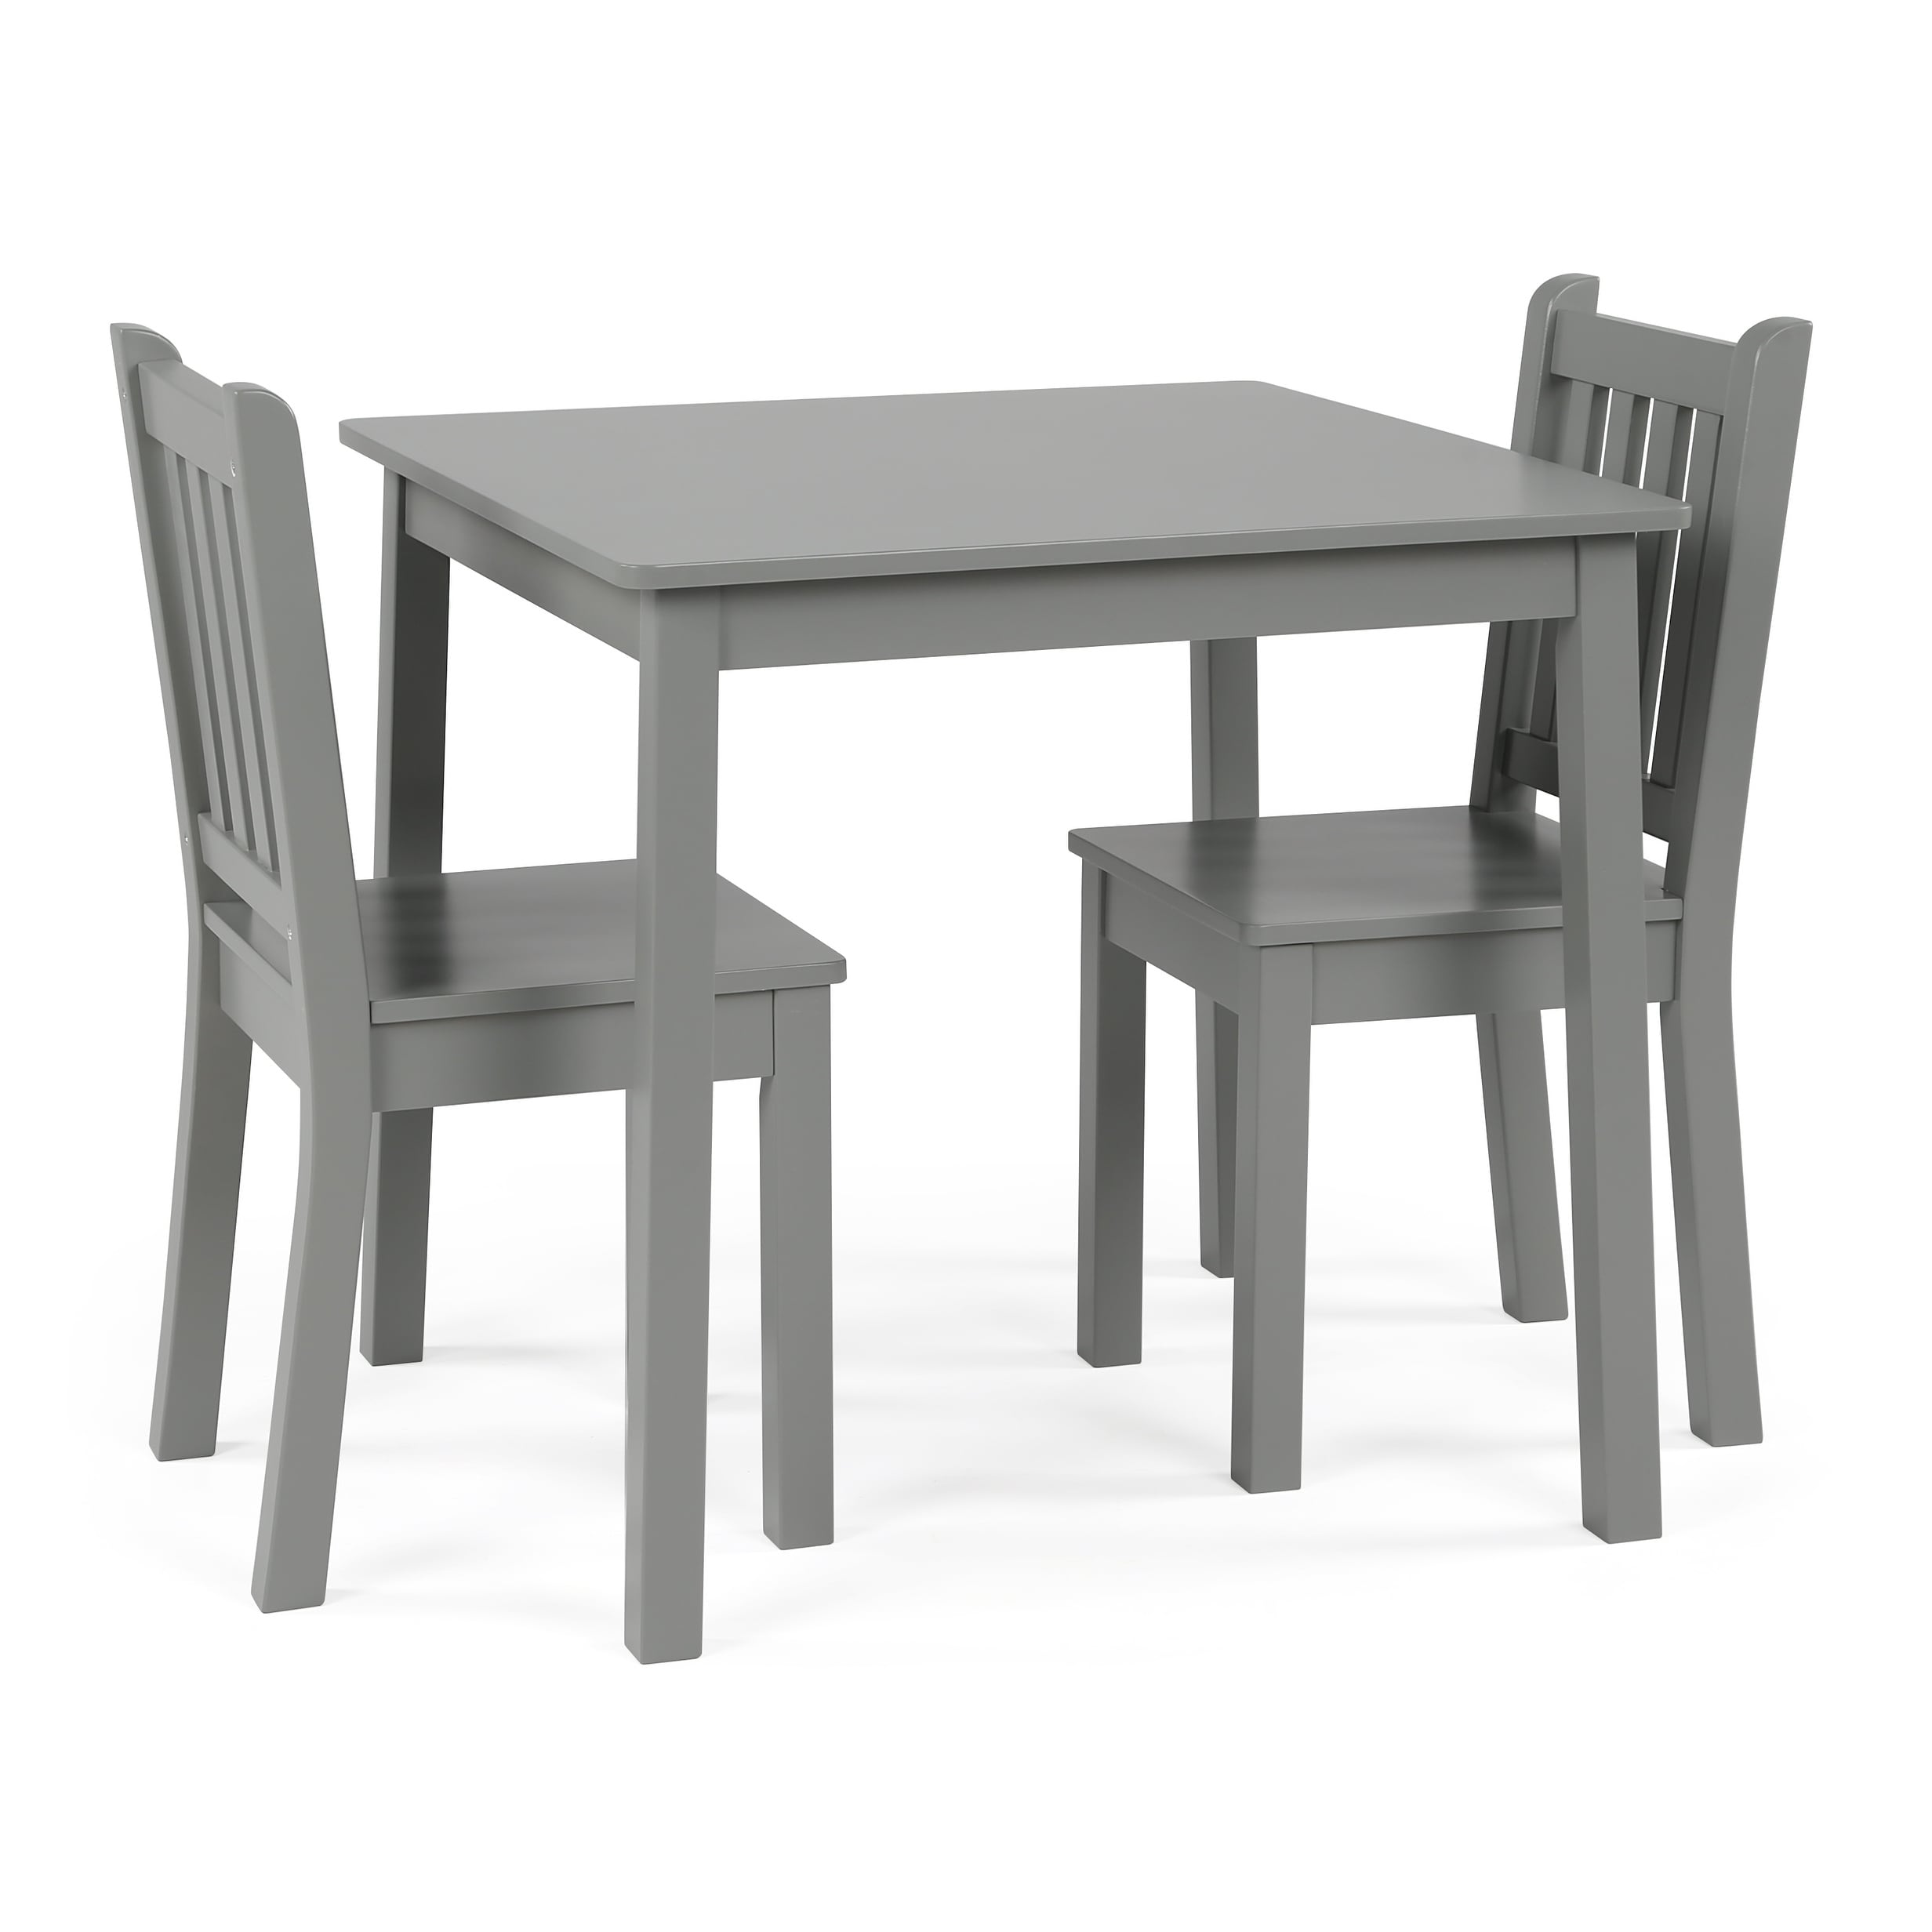 Shop Wood Kids Table U0026 Chairs 3 Piece Set, Grey   Free Shipping Today    Overstock.com   19508685